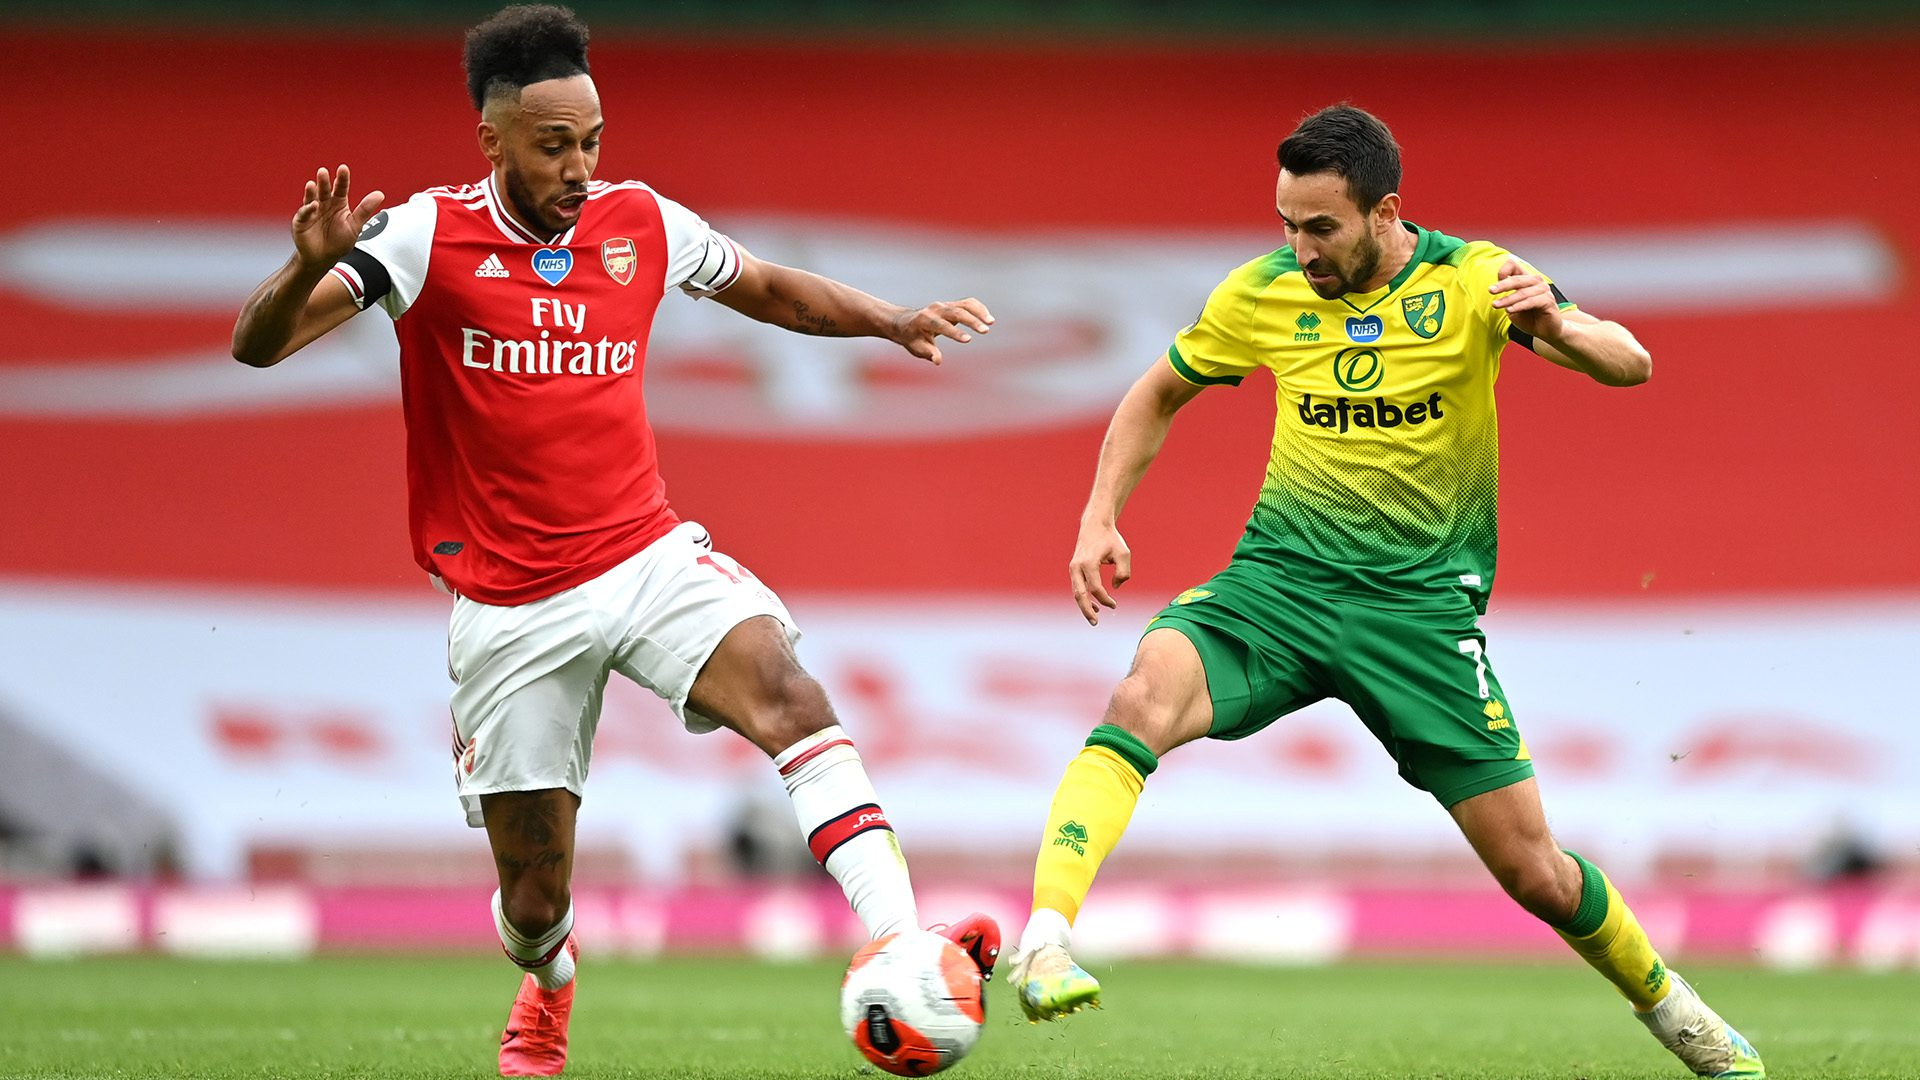 Arsenal vs Norwich Prediction And Odds: Wounded Gunners To Bounce Back